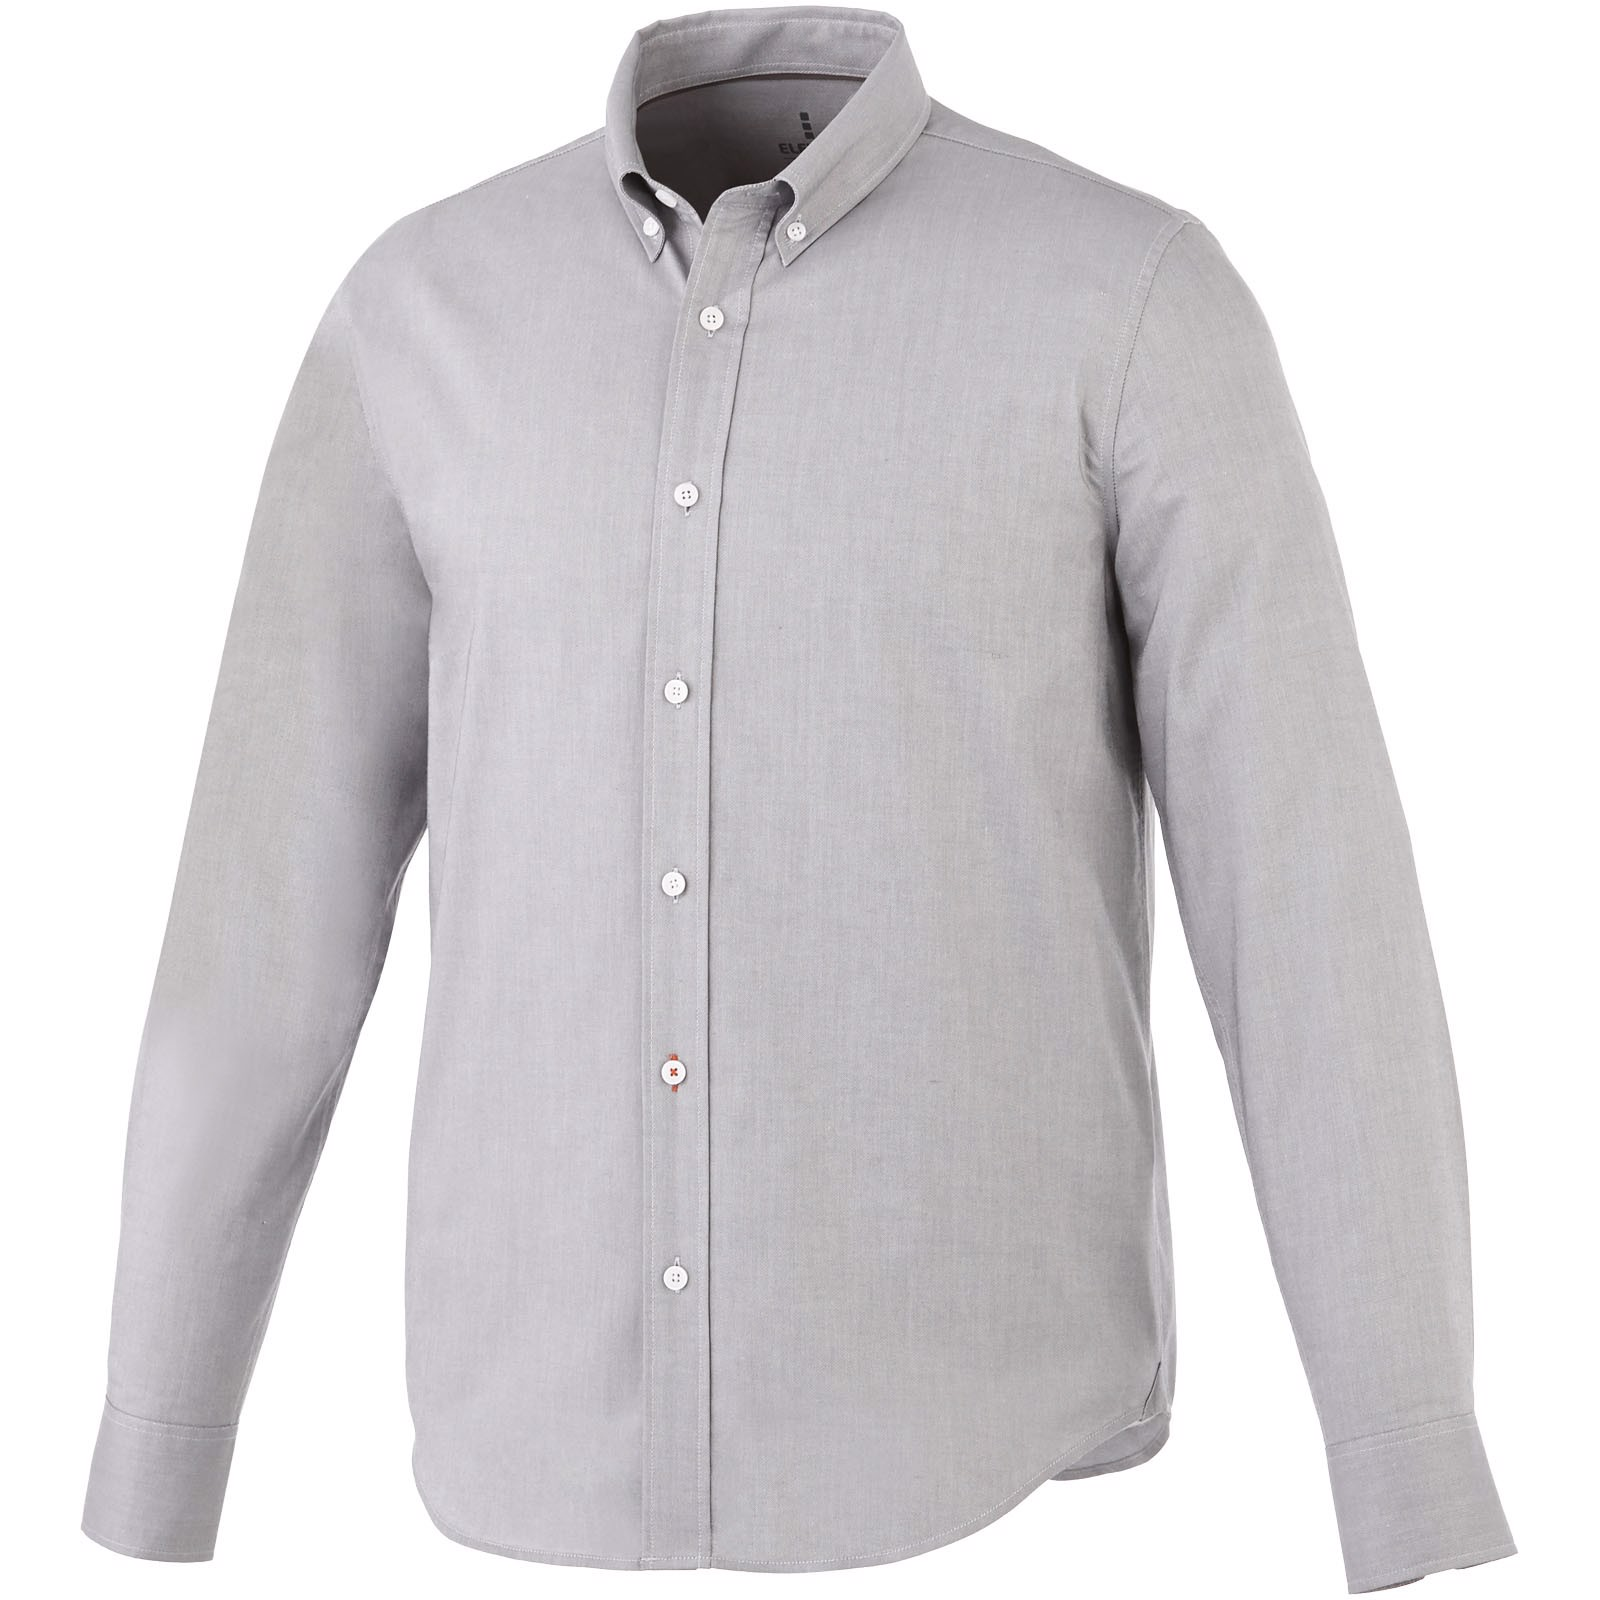 Vaillant long sleeve Shirt - Steel Grey / 3XL